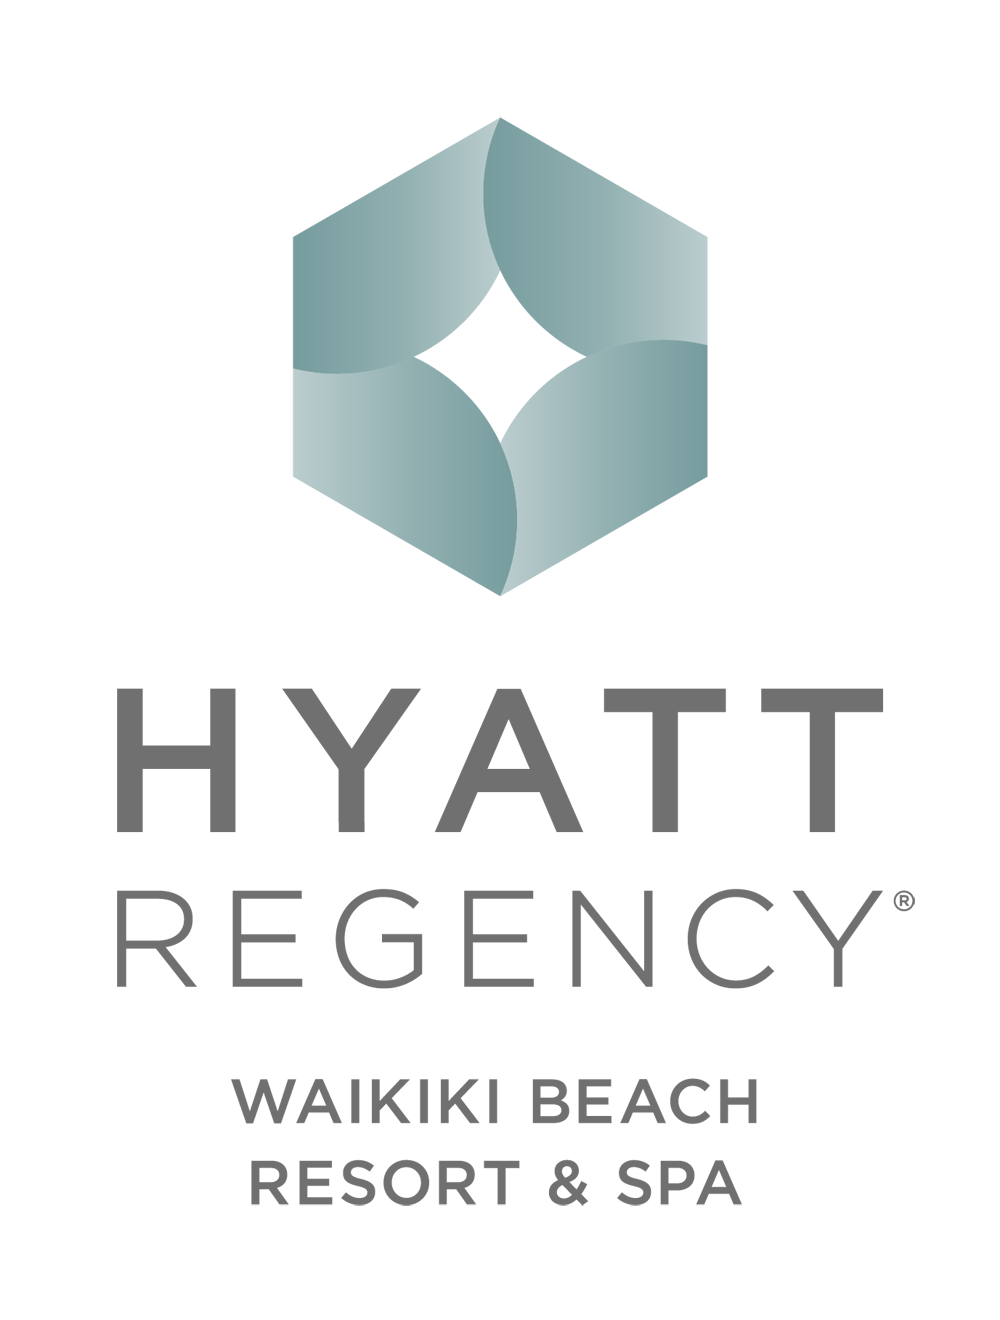 Hyatt Regency Waikiki Beach Resort and Spa logo